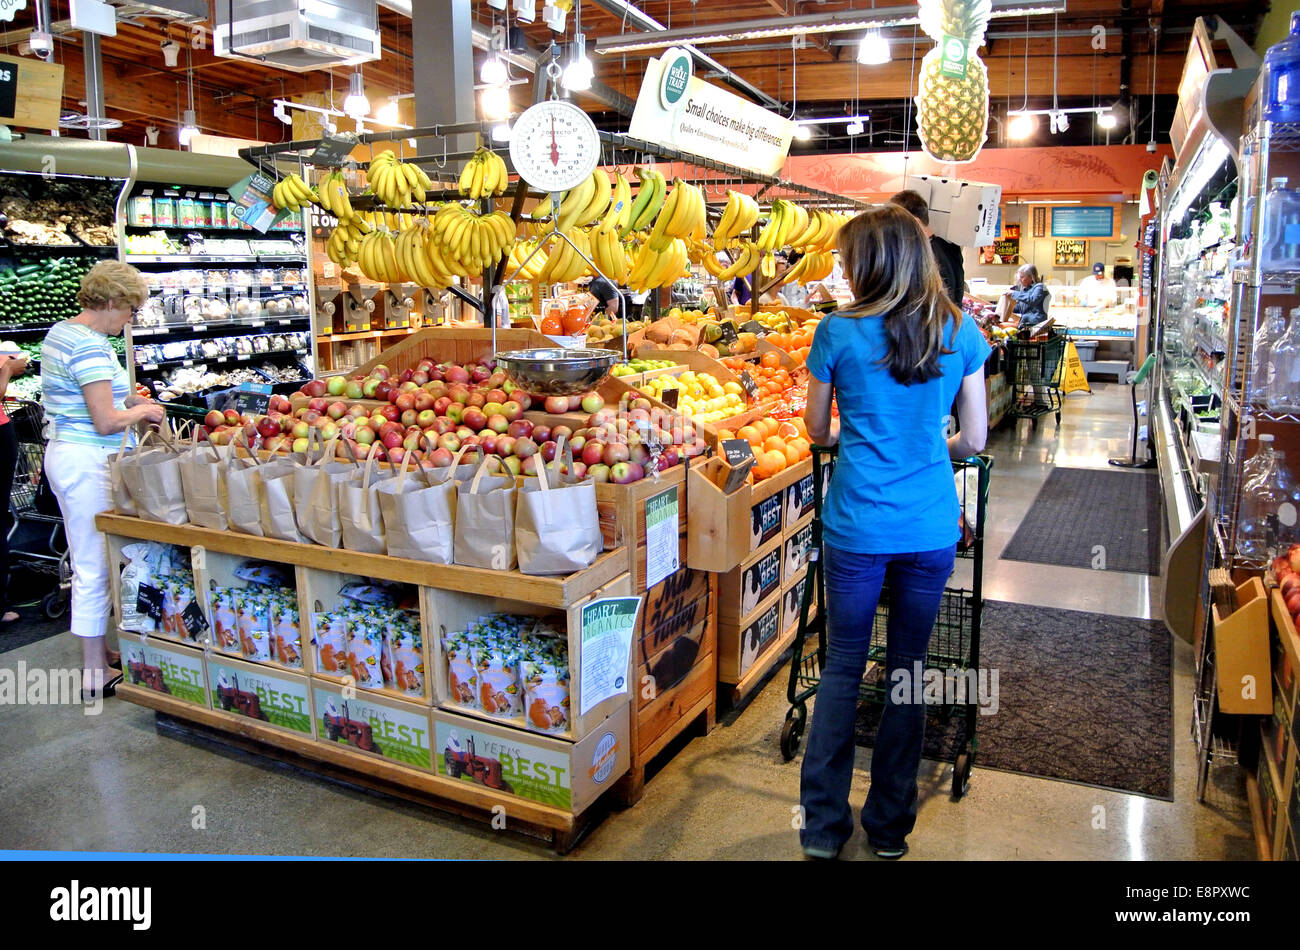 Whole Foods E Blithedale Mill Valley